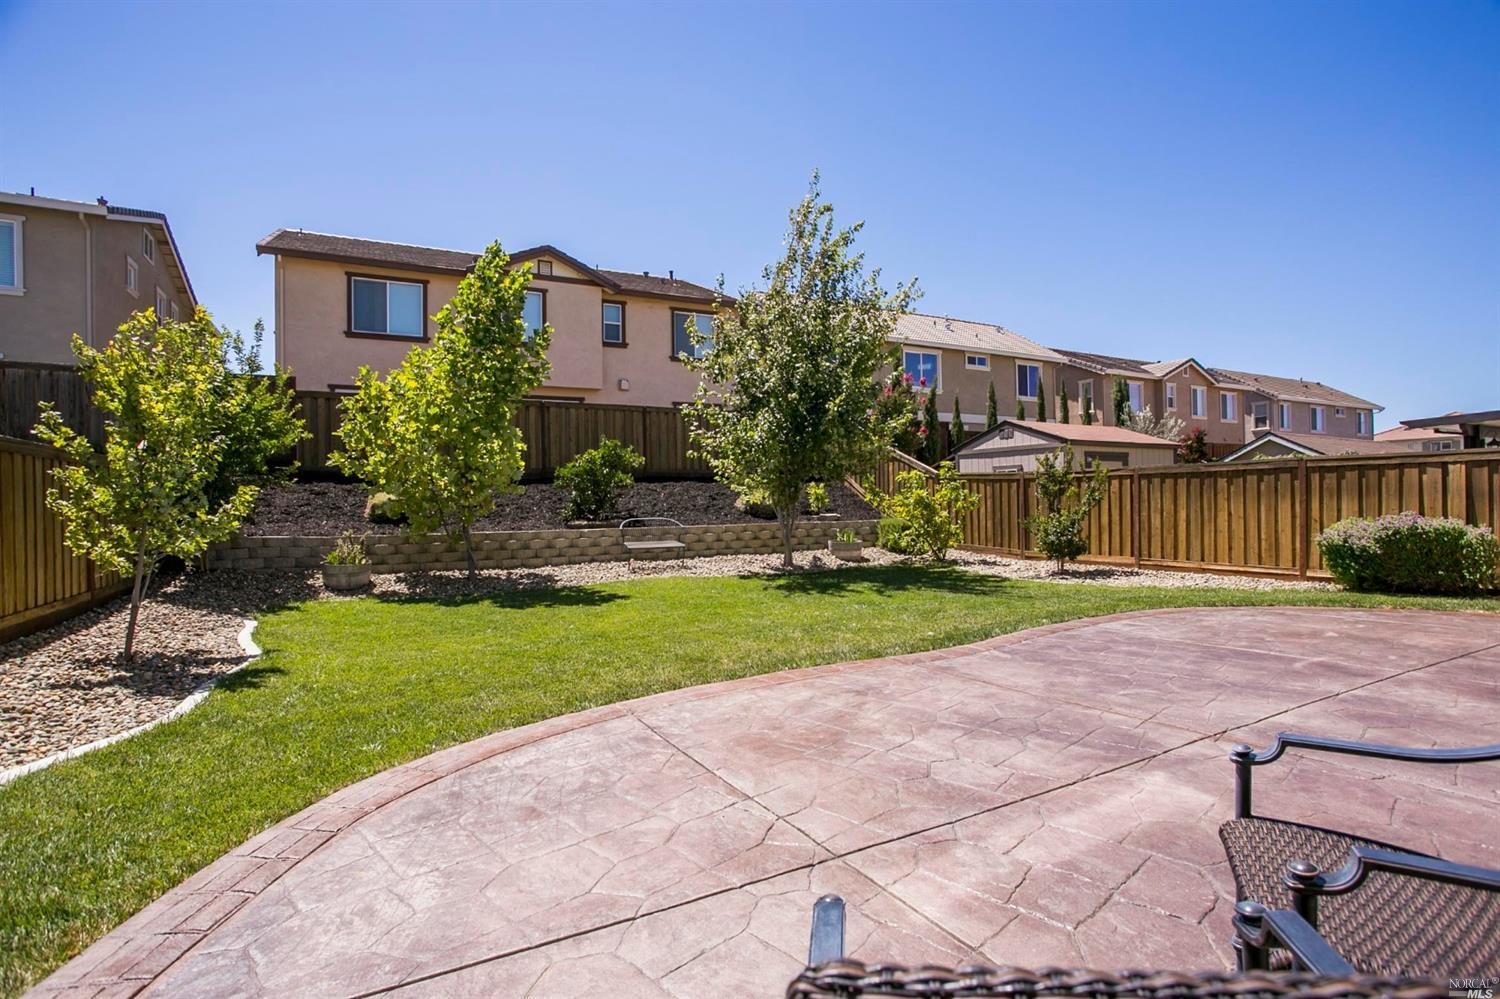 2141 Lariat drive Fairfield, CA 94534 - MLS #: 21716448